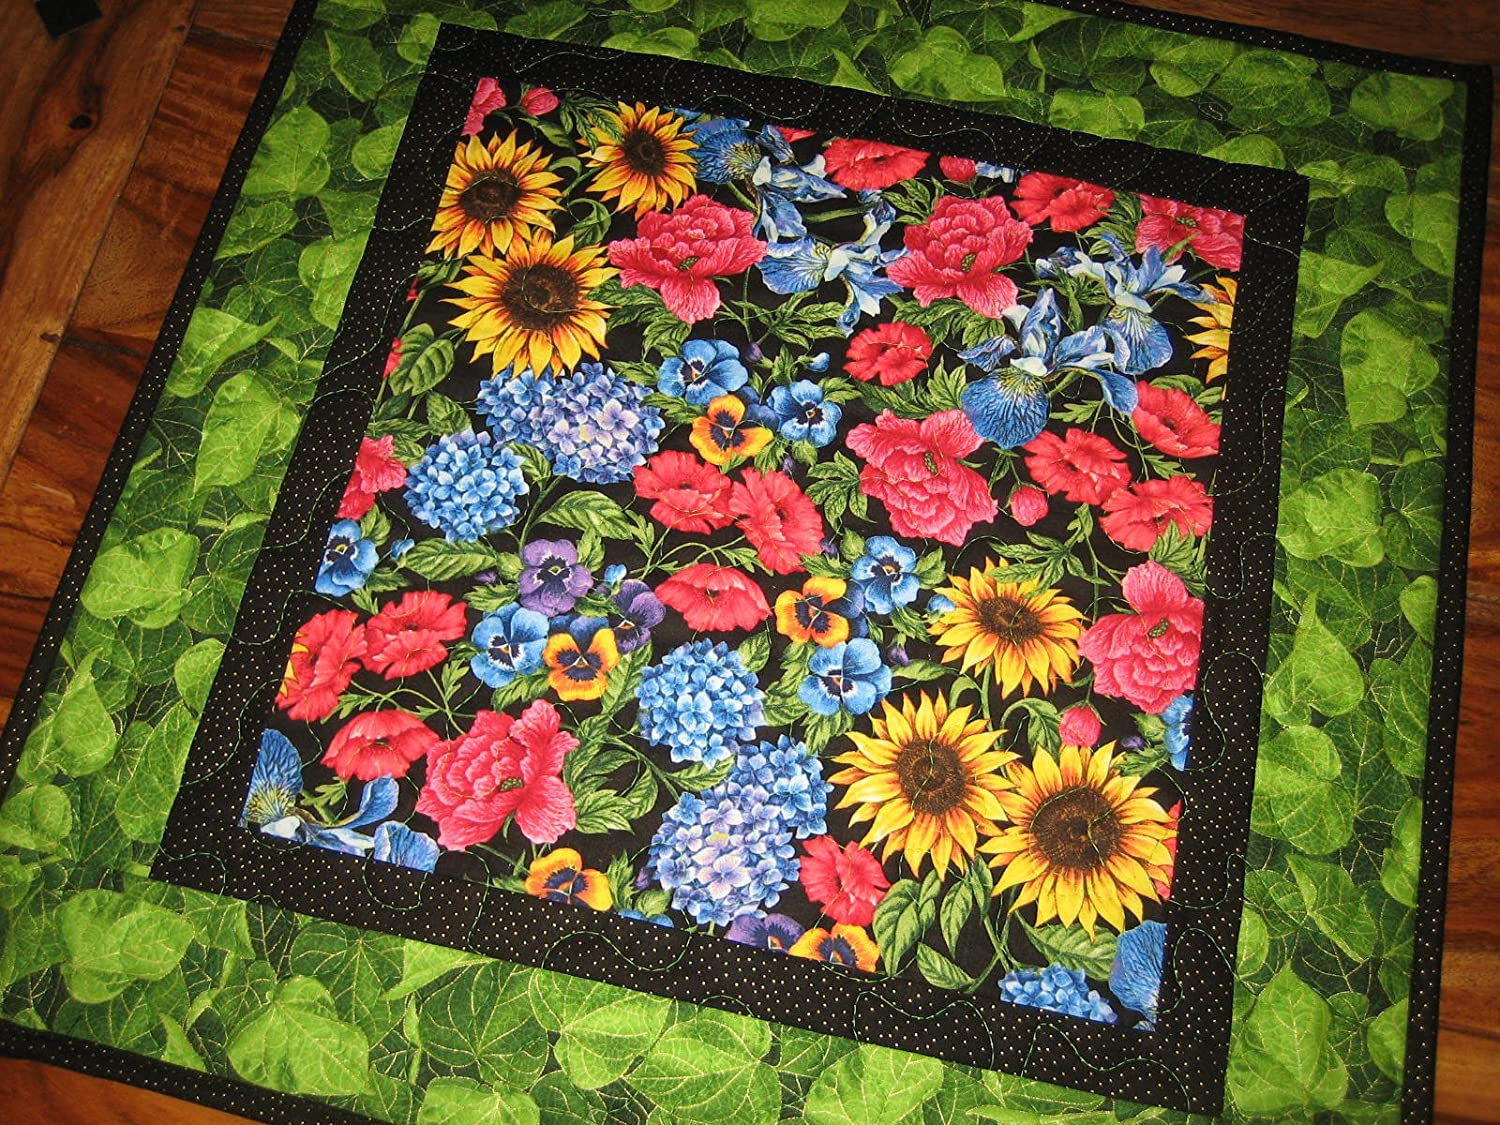 Quilted Table Topper Sunflower Roses Iris Pansies Summer 21x21